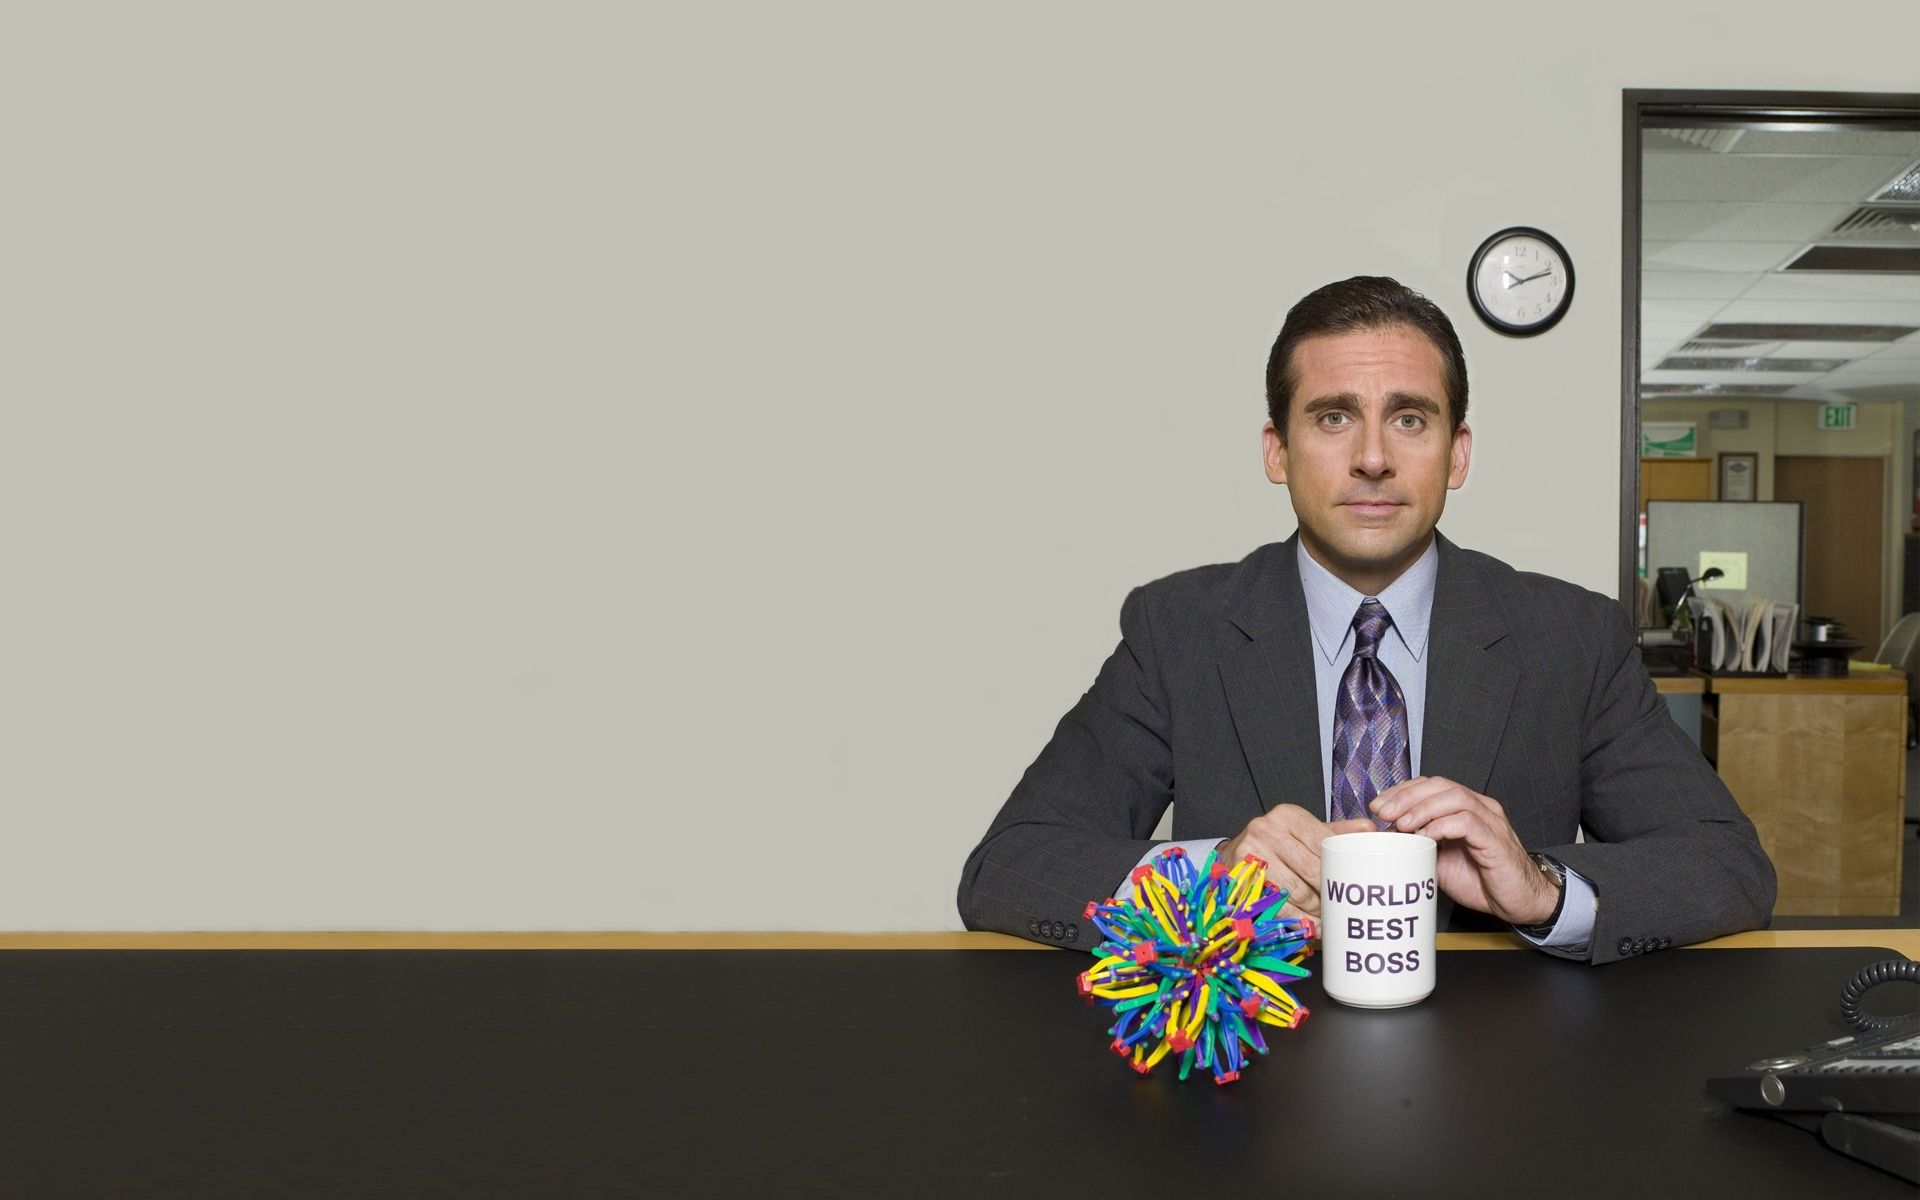 Download wallpapers 1920x1200 the office, tv series, steve carell